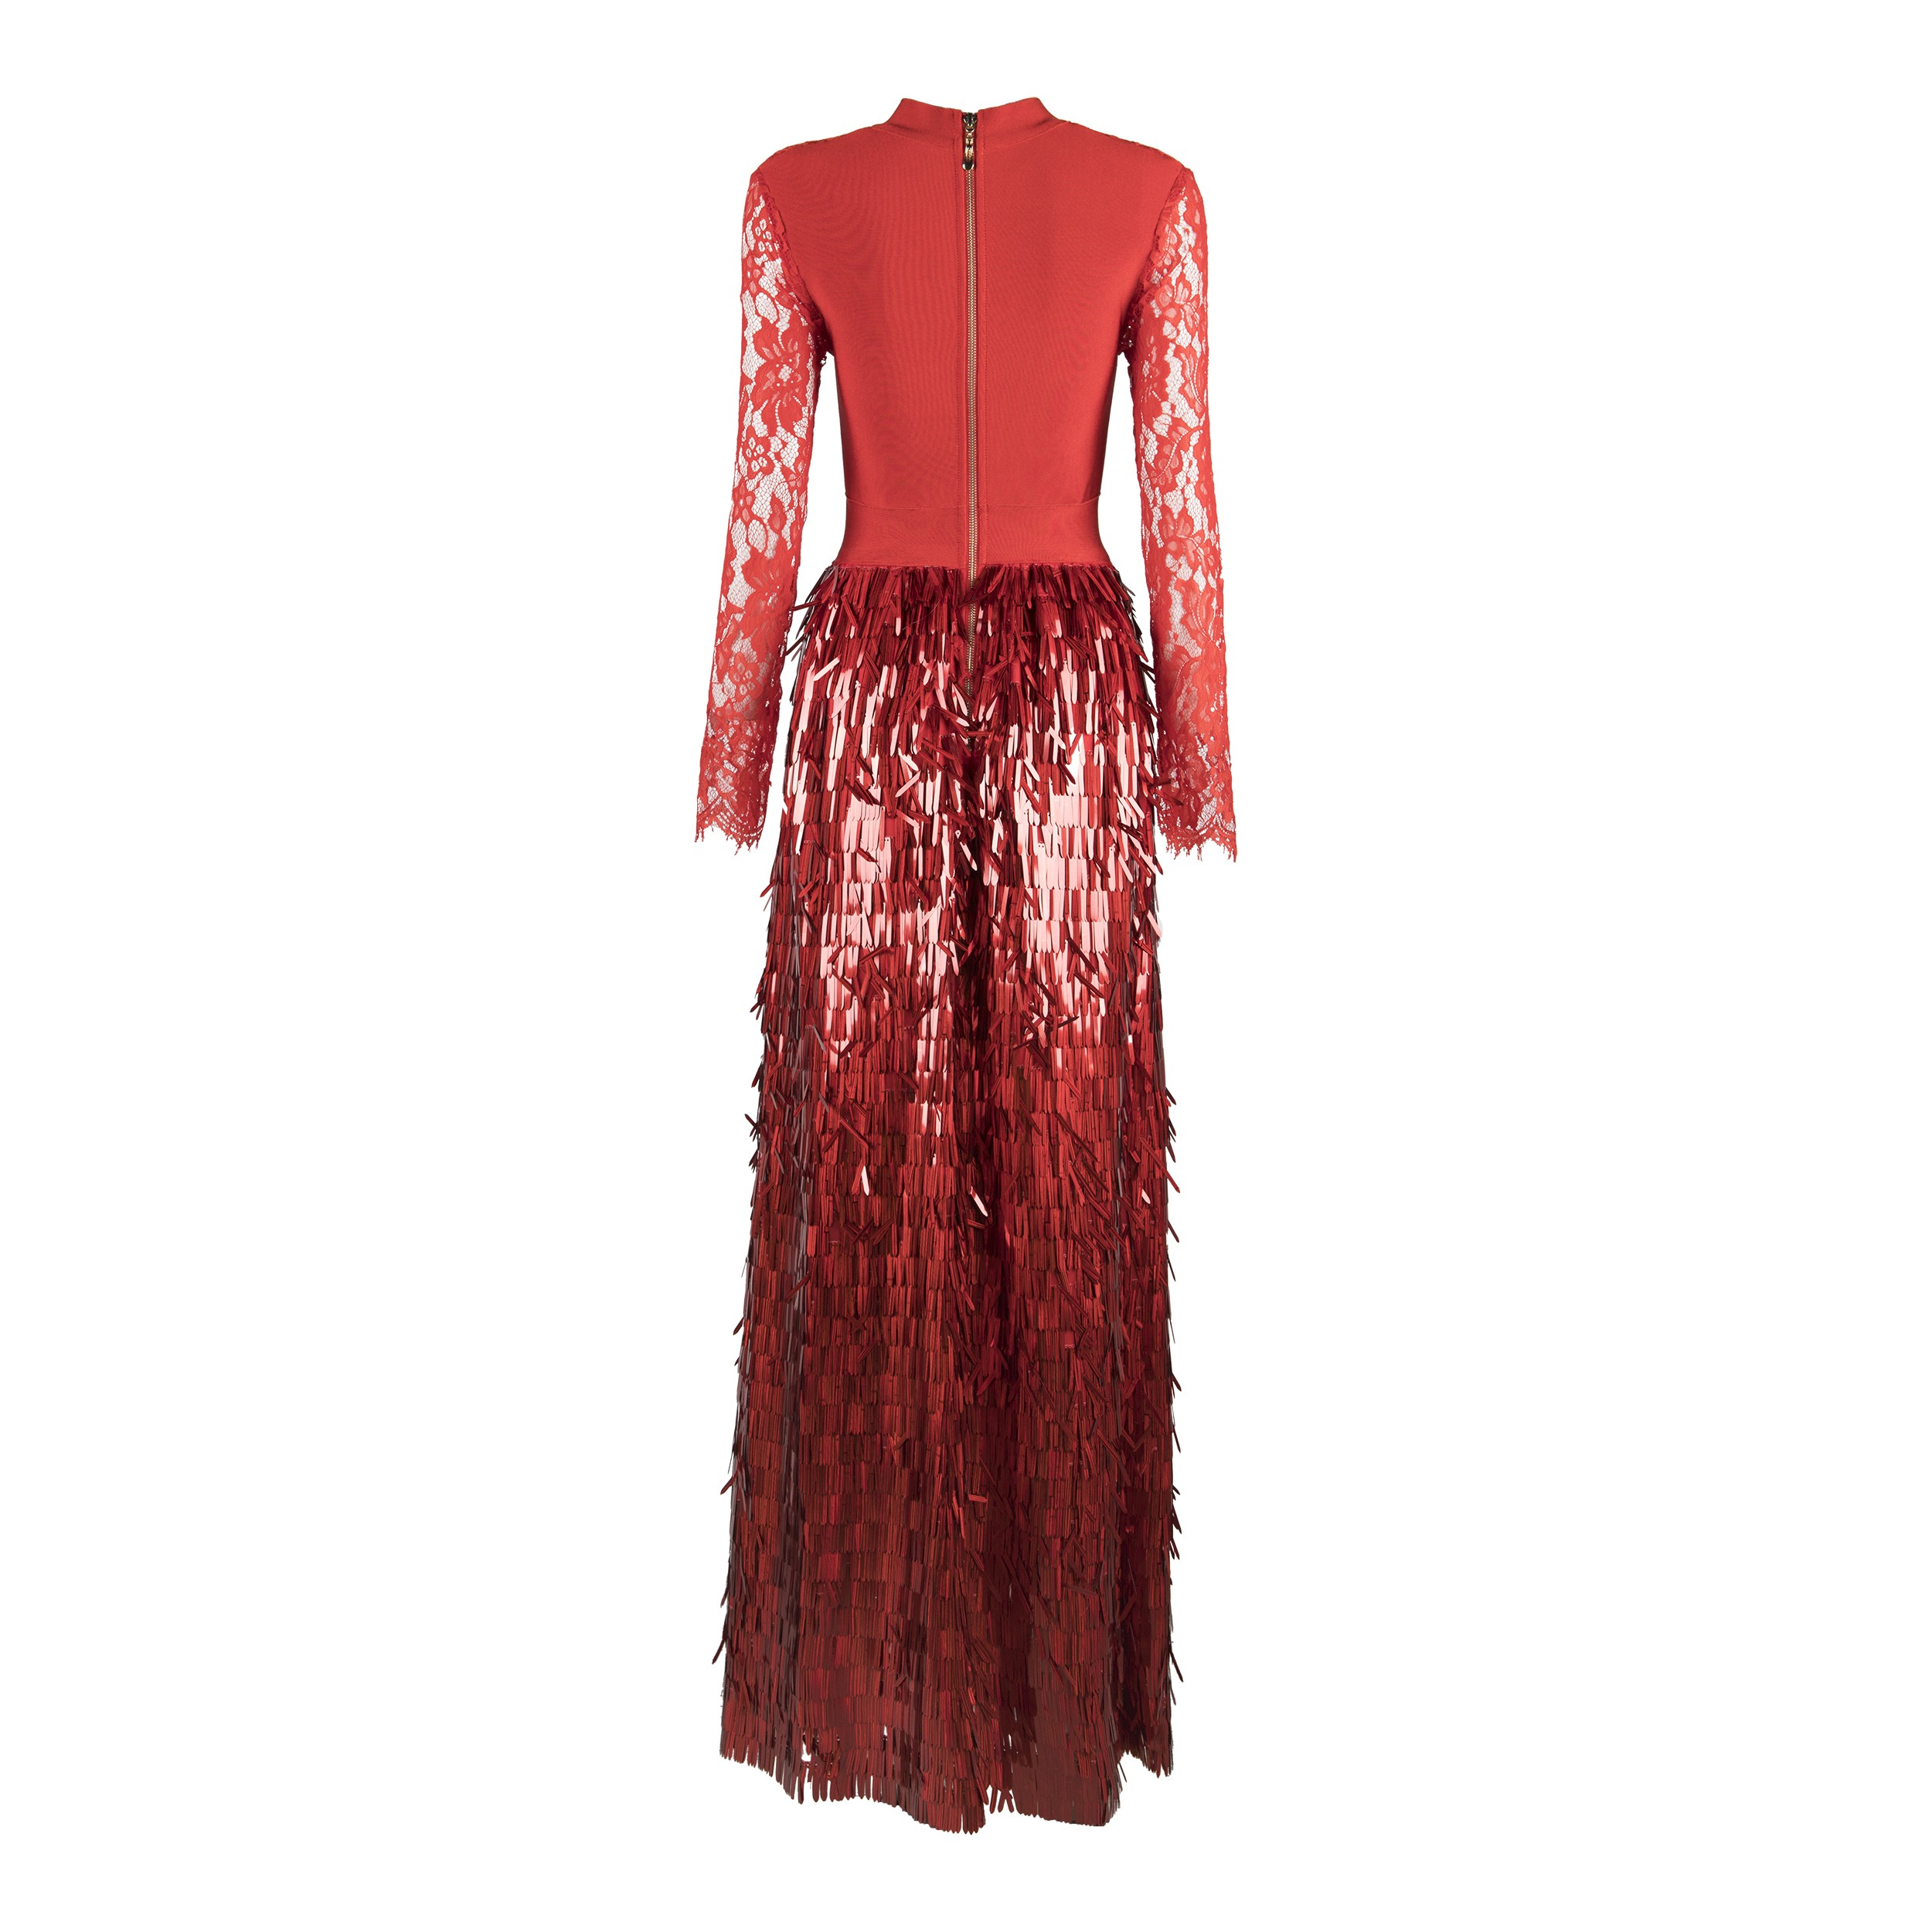 Red High Neck Long Sleeve Maxi Sequined Lace Bling Bandage Dress HB5261-Red